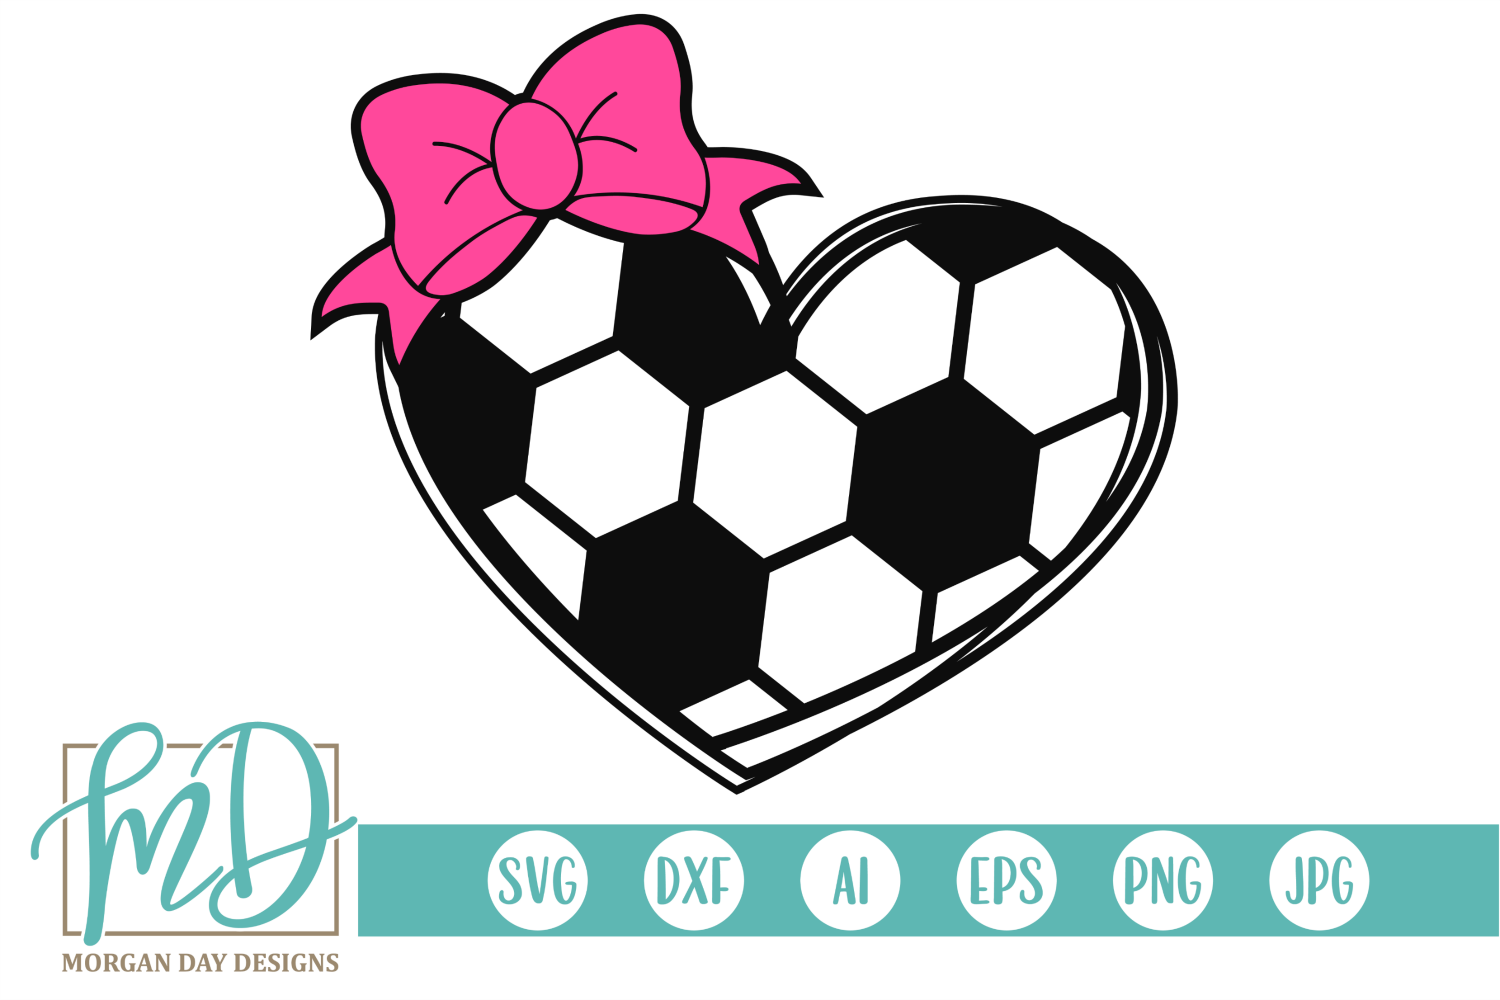 Download Free Soccer Heart Graphic By Morgan Day Designs Creative Fabrica for Cricut Explore, Silhouette and other cutting machines.